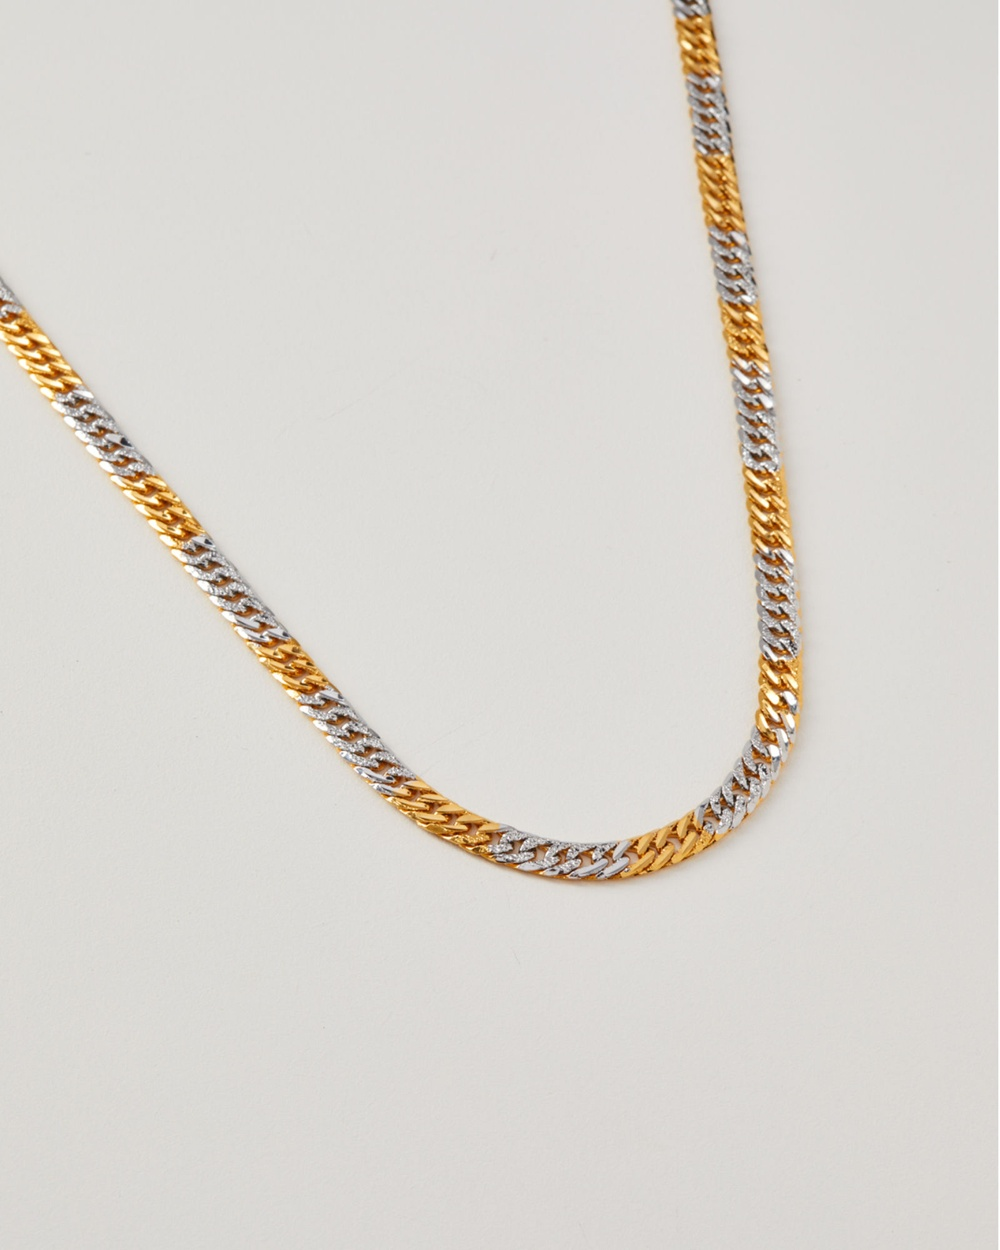 ALIX YANG Cleo Chain Jewellery Gold, silver